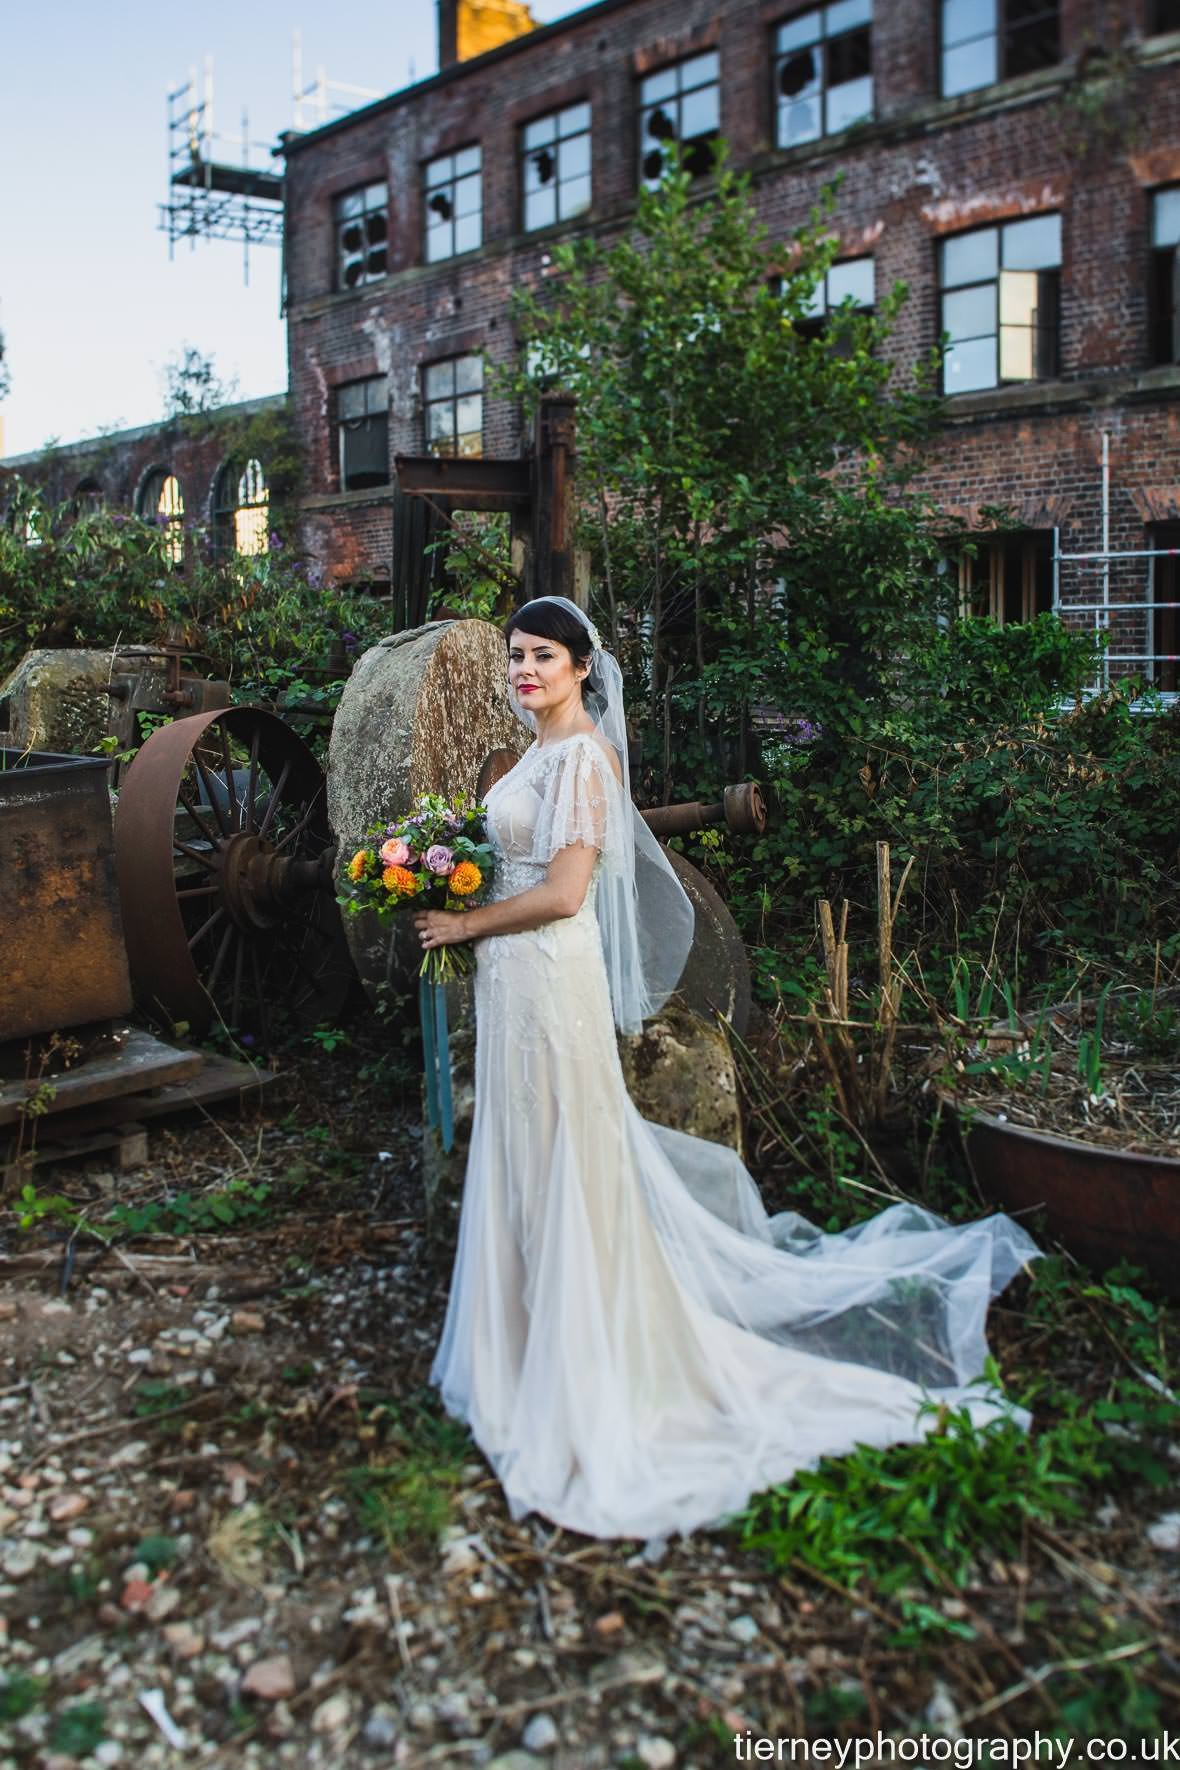 703-wedding-at-kelham-island-museum